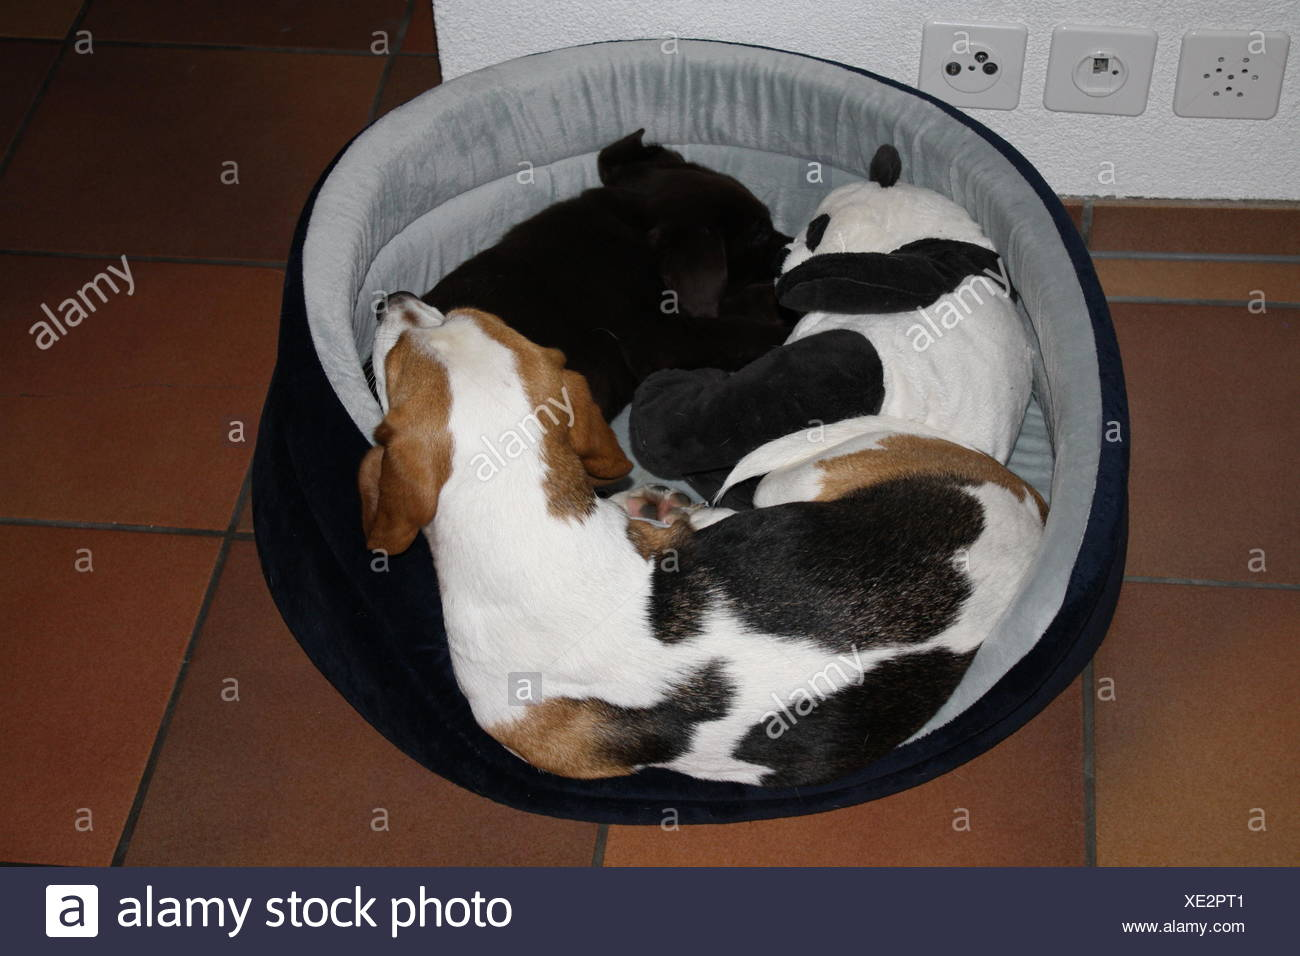 Two Dogs Sleeping In A Round Dog Bed Indoor - Stock Image